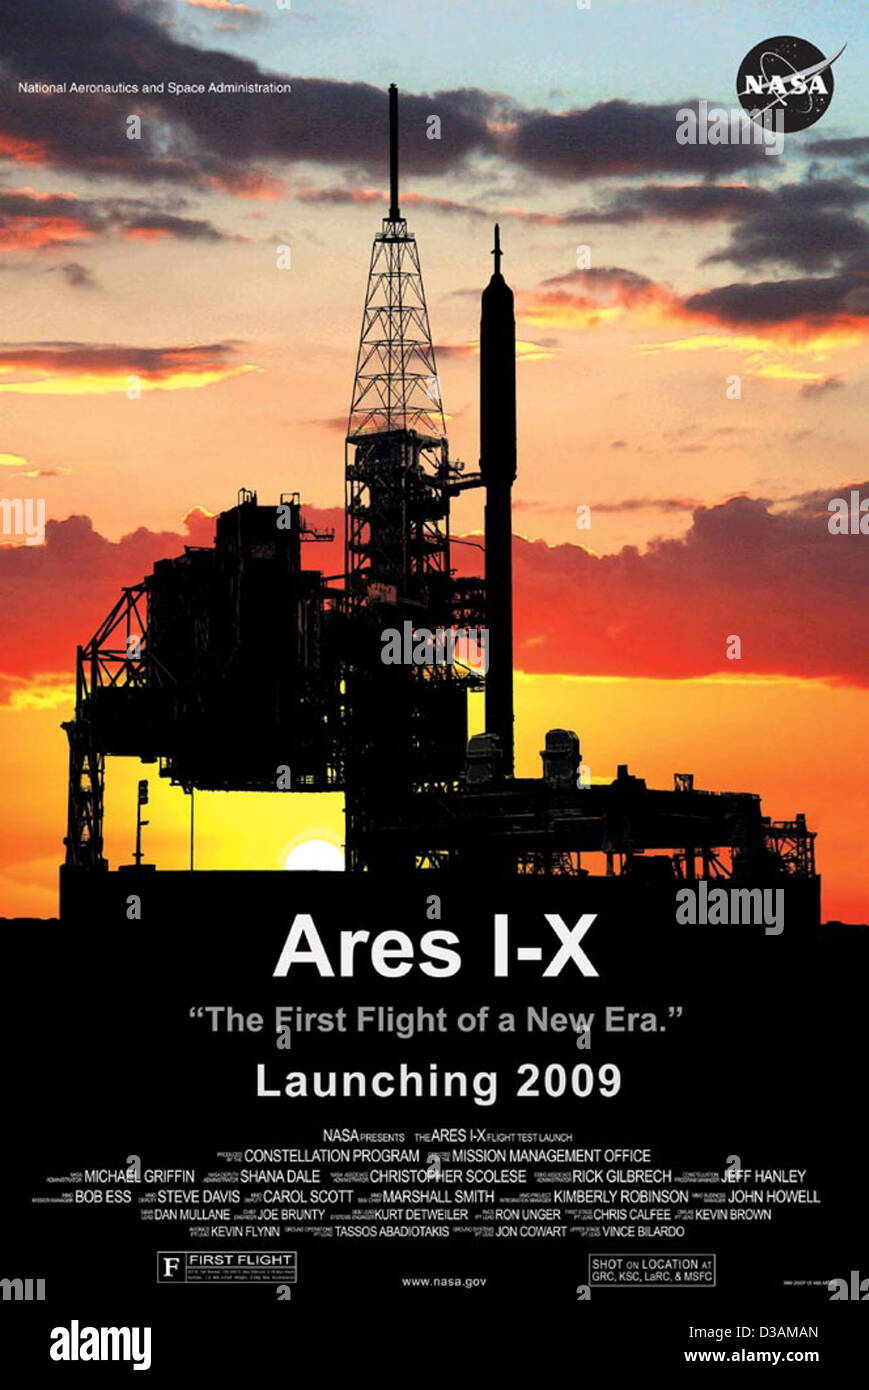 Ares I-X Movie Poster - Stock Image